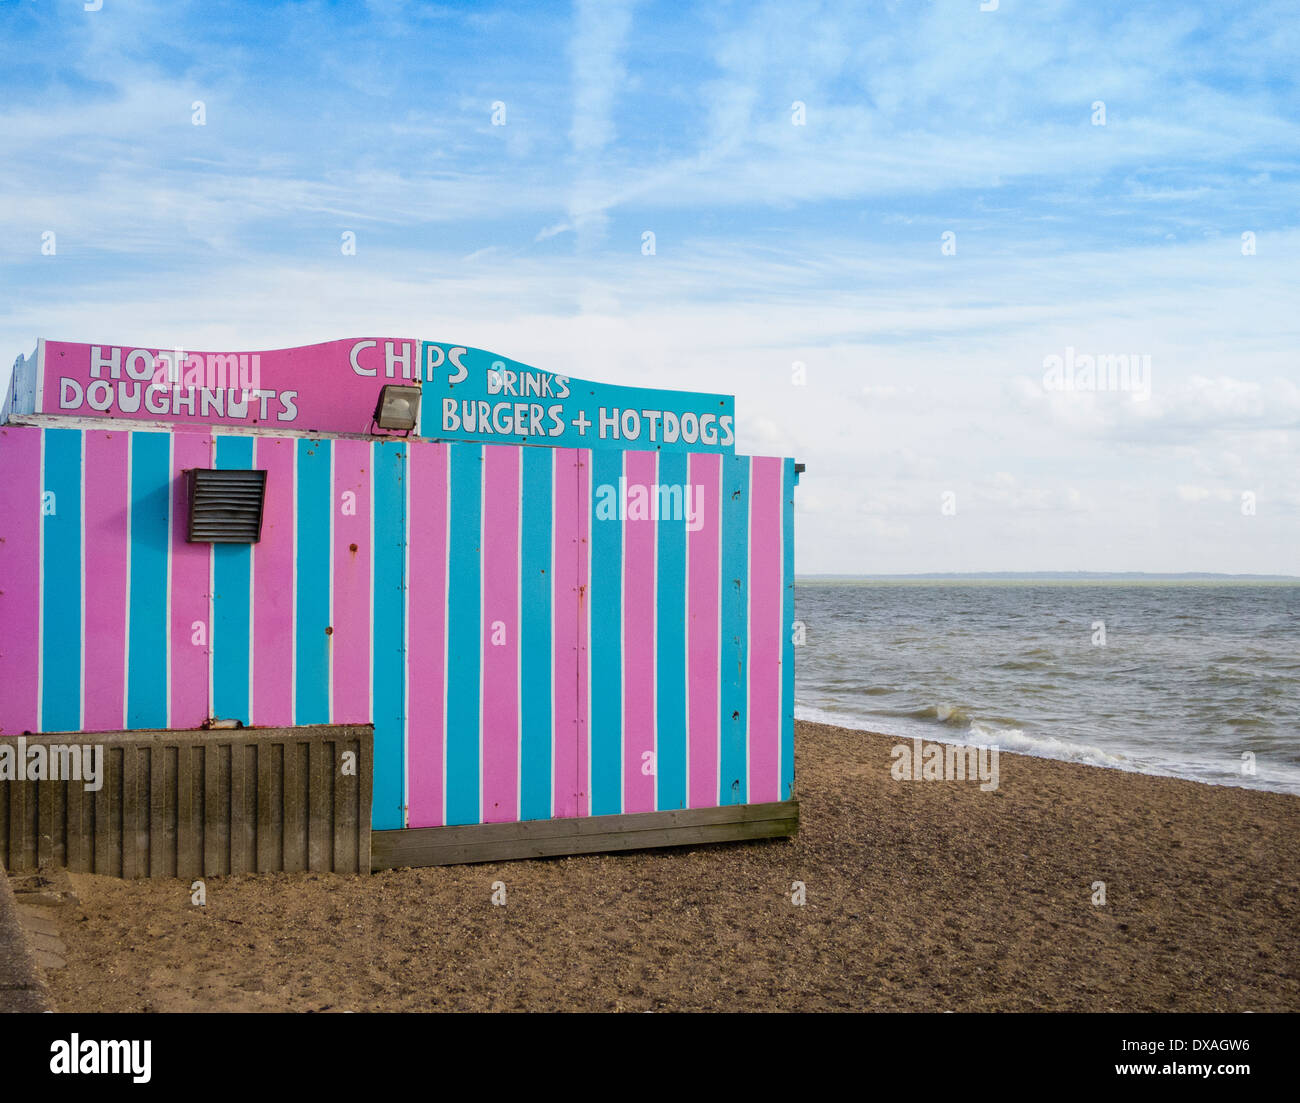 Food stall on a beach at Southend-On-Sea, Essex UK - Stock Image